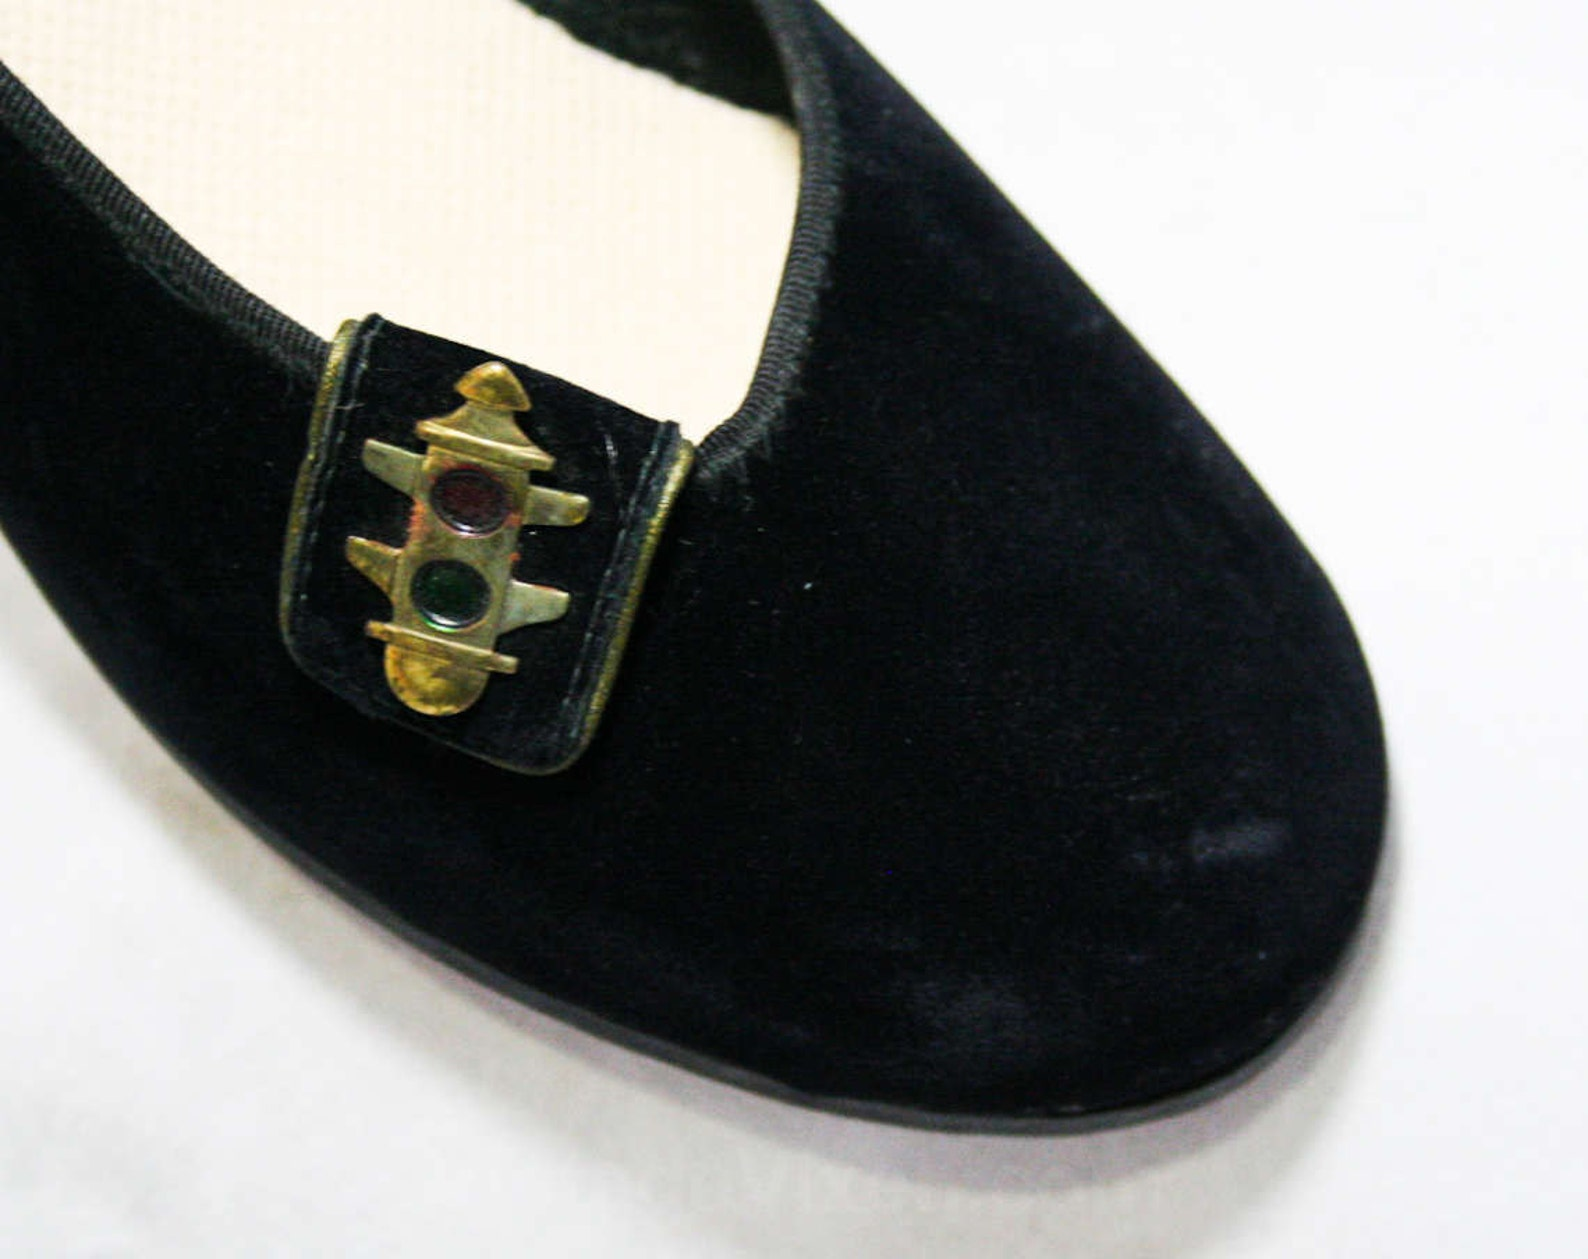 size 4 black shoes - traffic lights detail - small size 1950s swing style ballet flats - 50s bobby soxer shoe - 50's lindy h